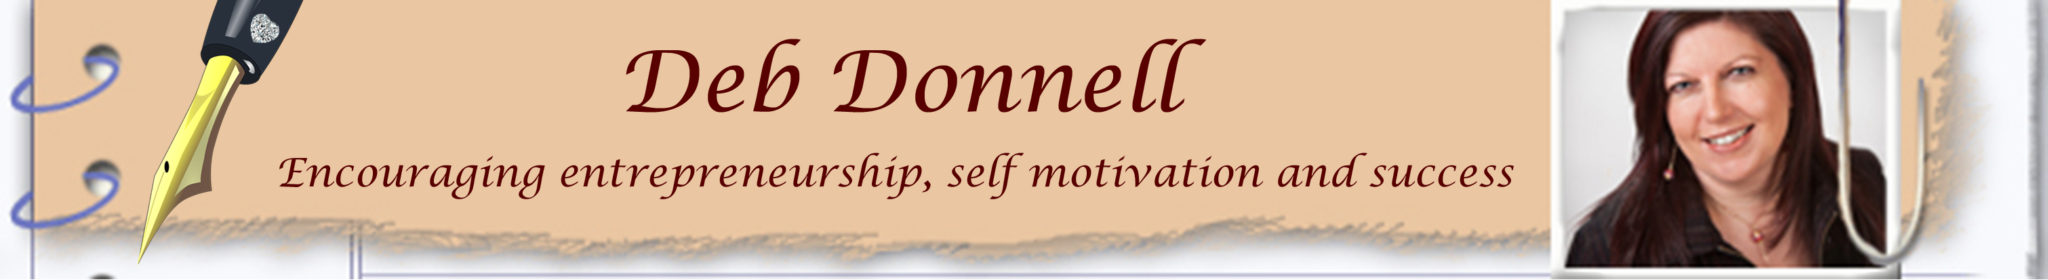 Deb Donnell Author